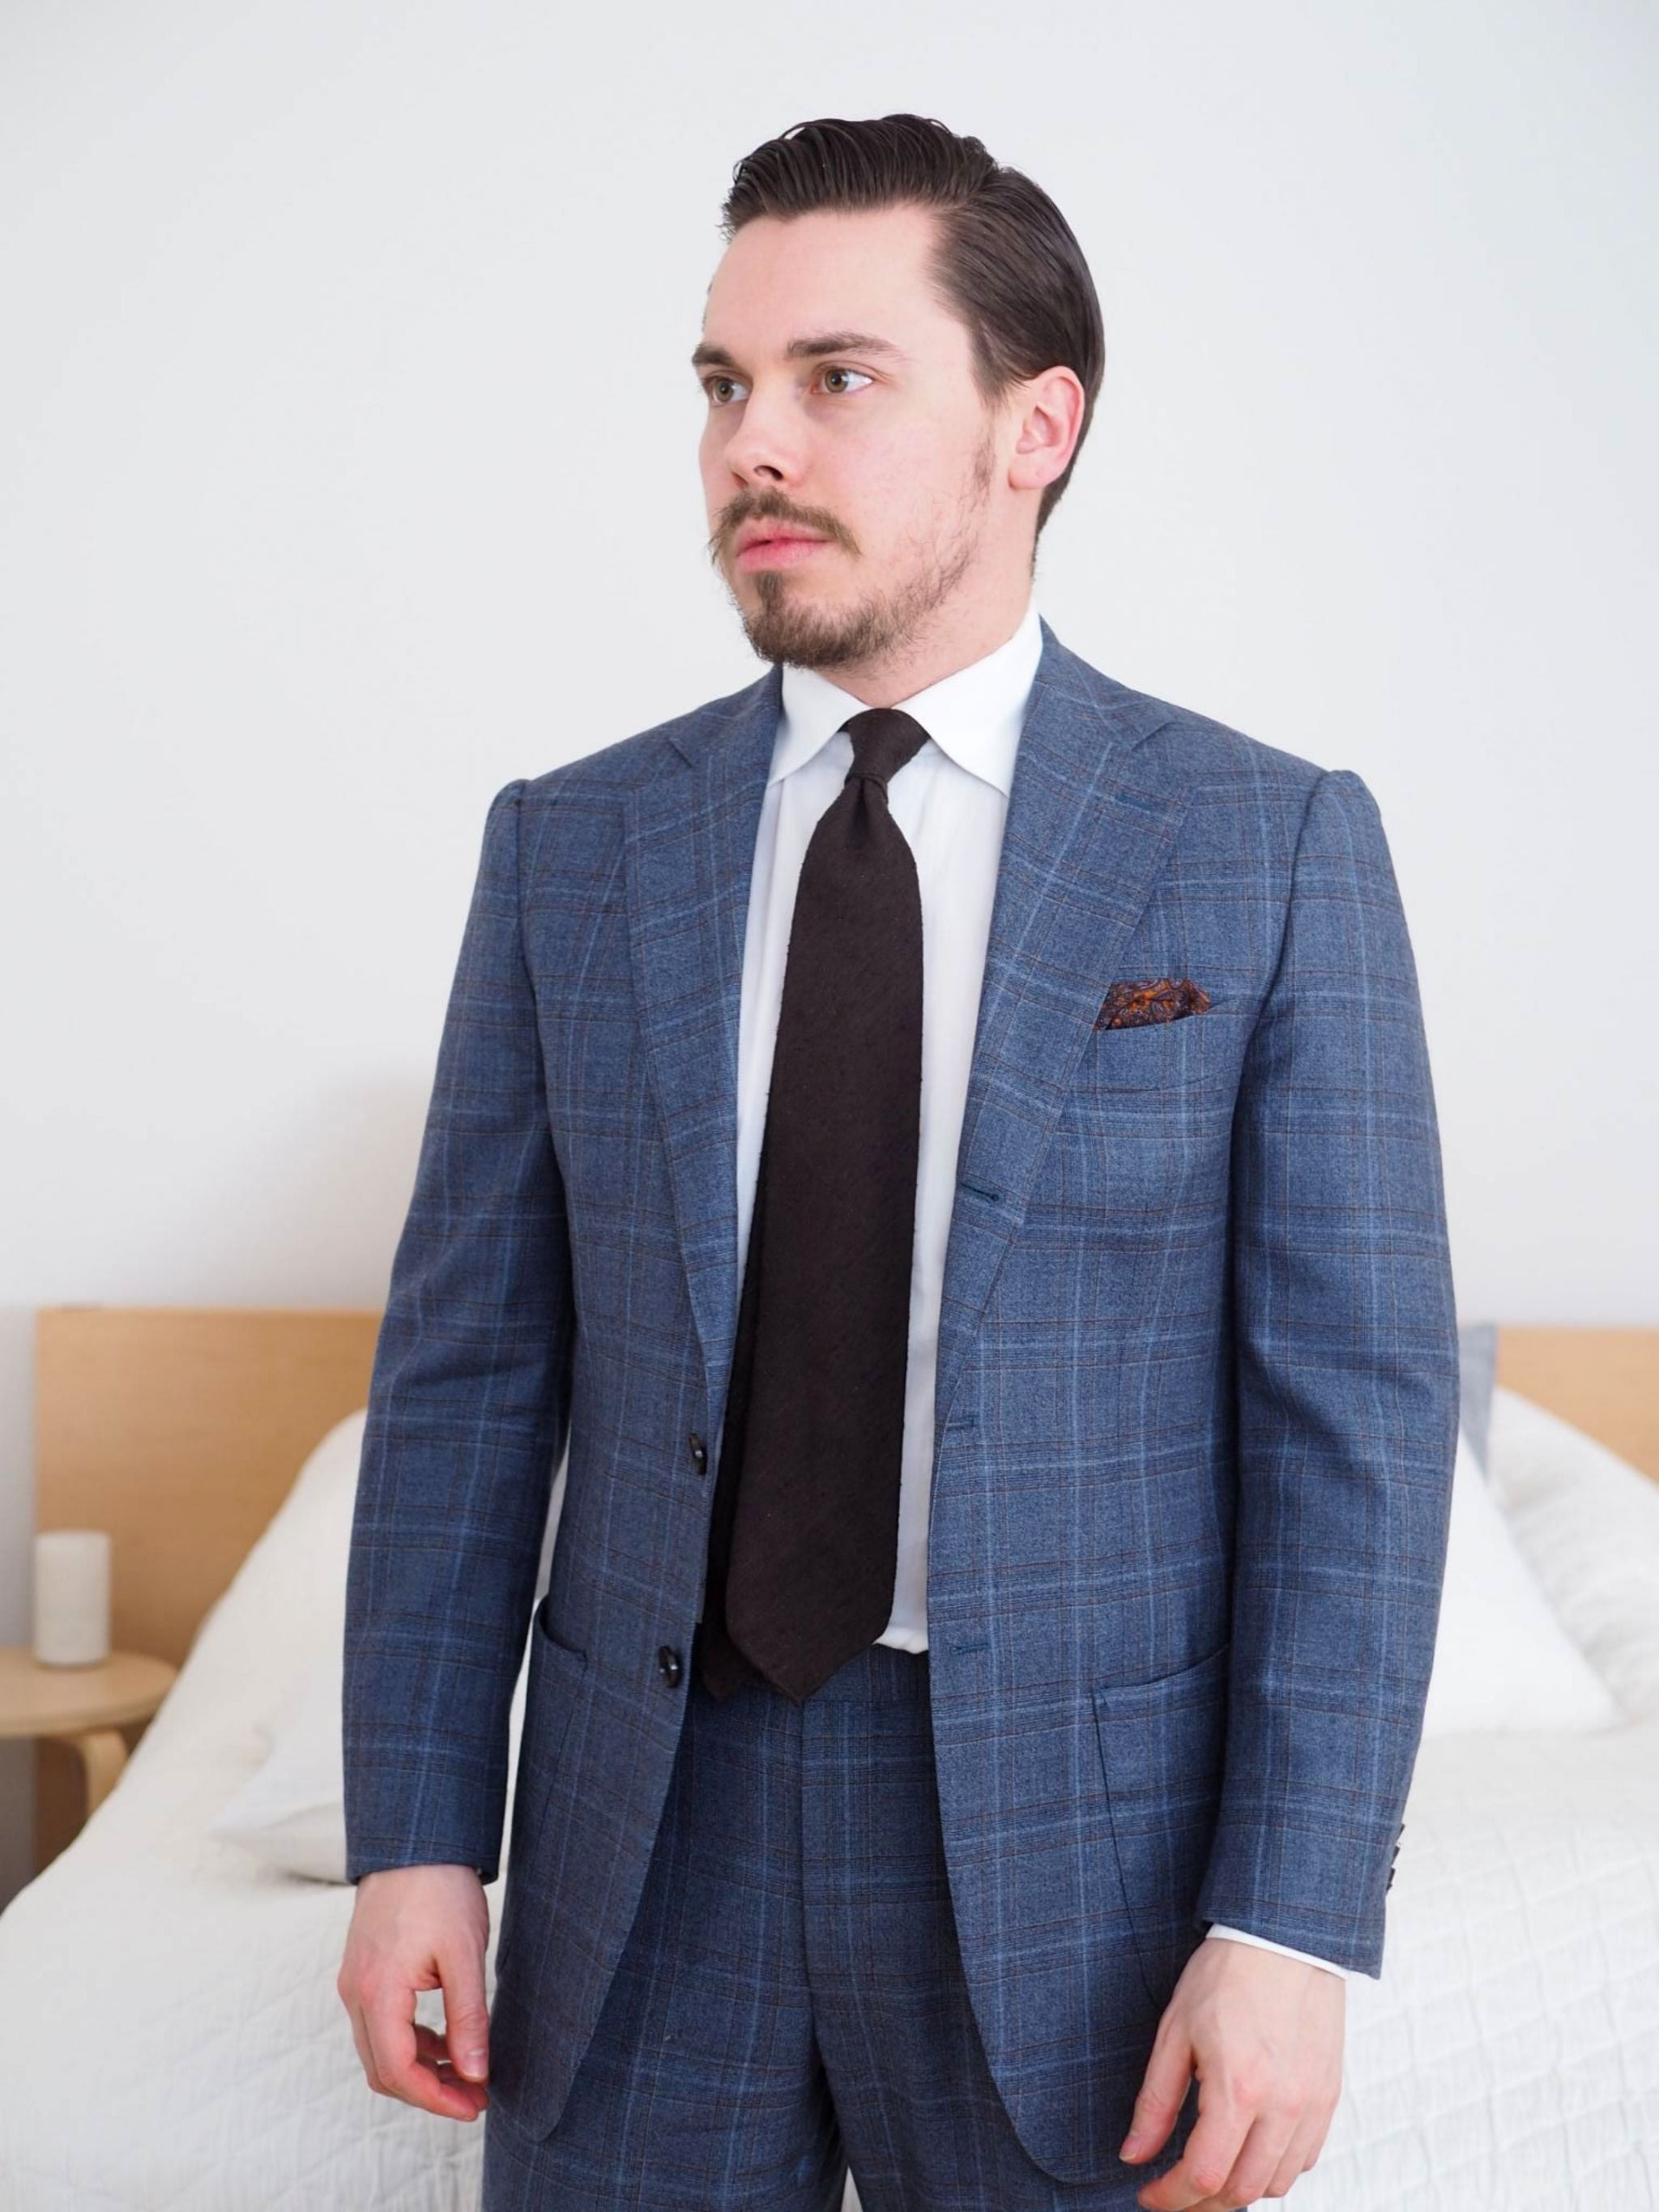 Light gray suit with restrained check pattern and neapolitan shoulder structure.